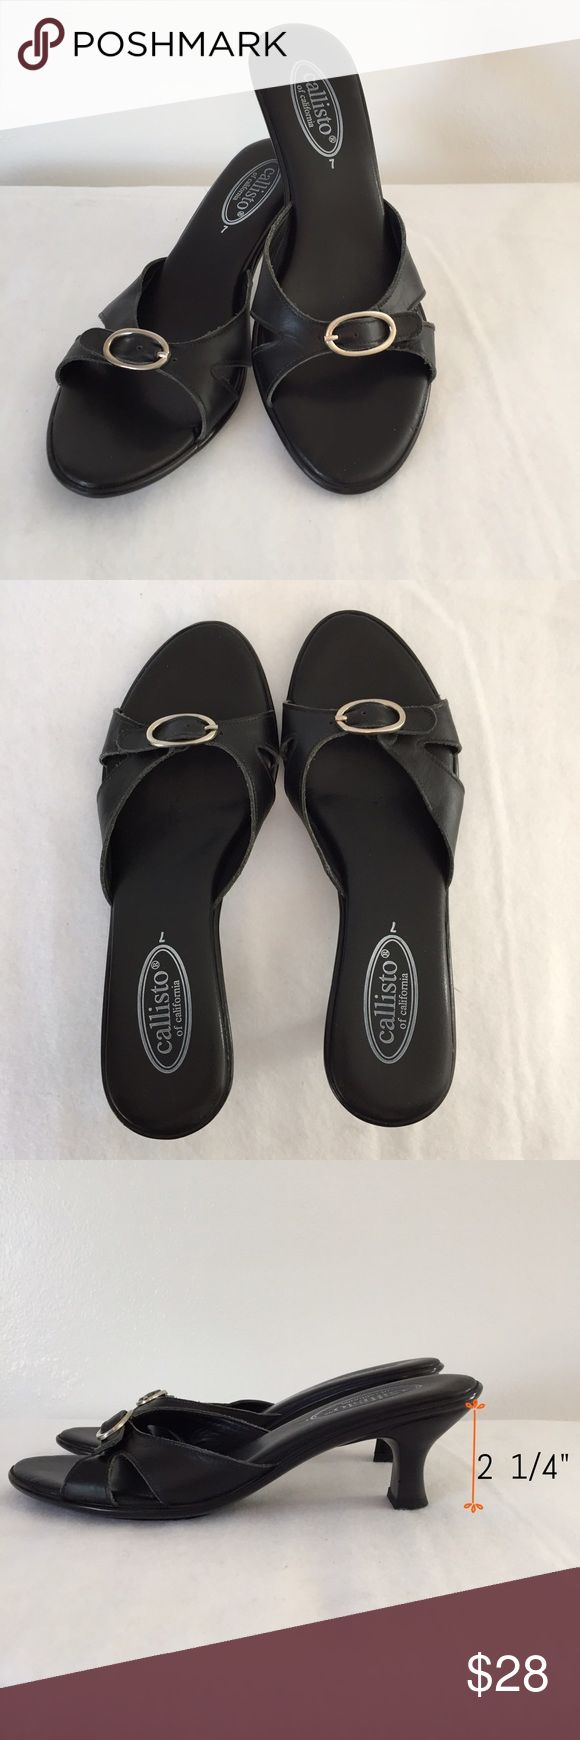 "Great summer heel- black Mid heel height (2 1/4"") sandals are never worn. Leather strap across toe with silver buckle. Wear with. Jeans, skirt, or poolside. Original box is not available. Callisto of California Shoes Sandals"